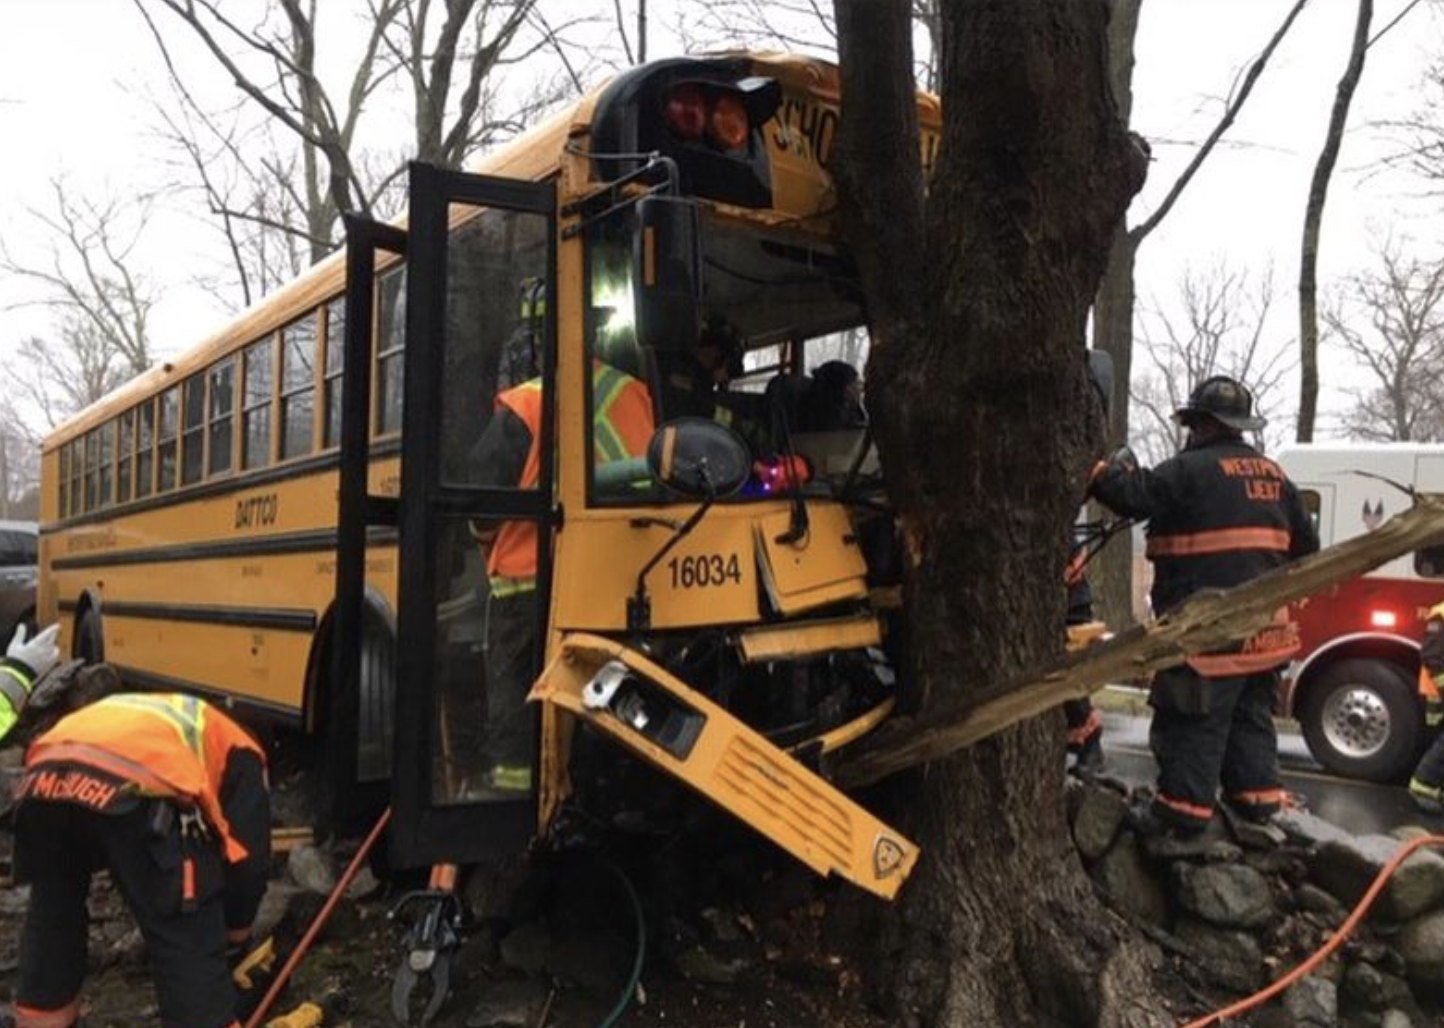 First responders attend to a bus that crashed into a tree and stone wall while carrying over 20 elementary schoolers. Several of the kids sustained minor injuries, though none had to be hospitalized. The driver was injured and taken to Norwalk Hospital by EMS.